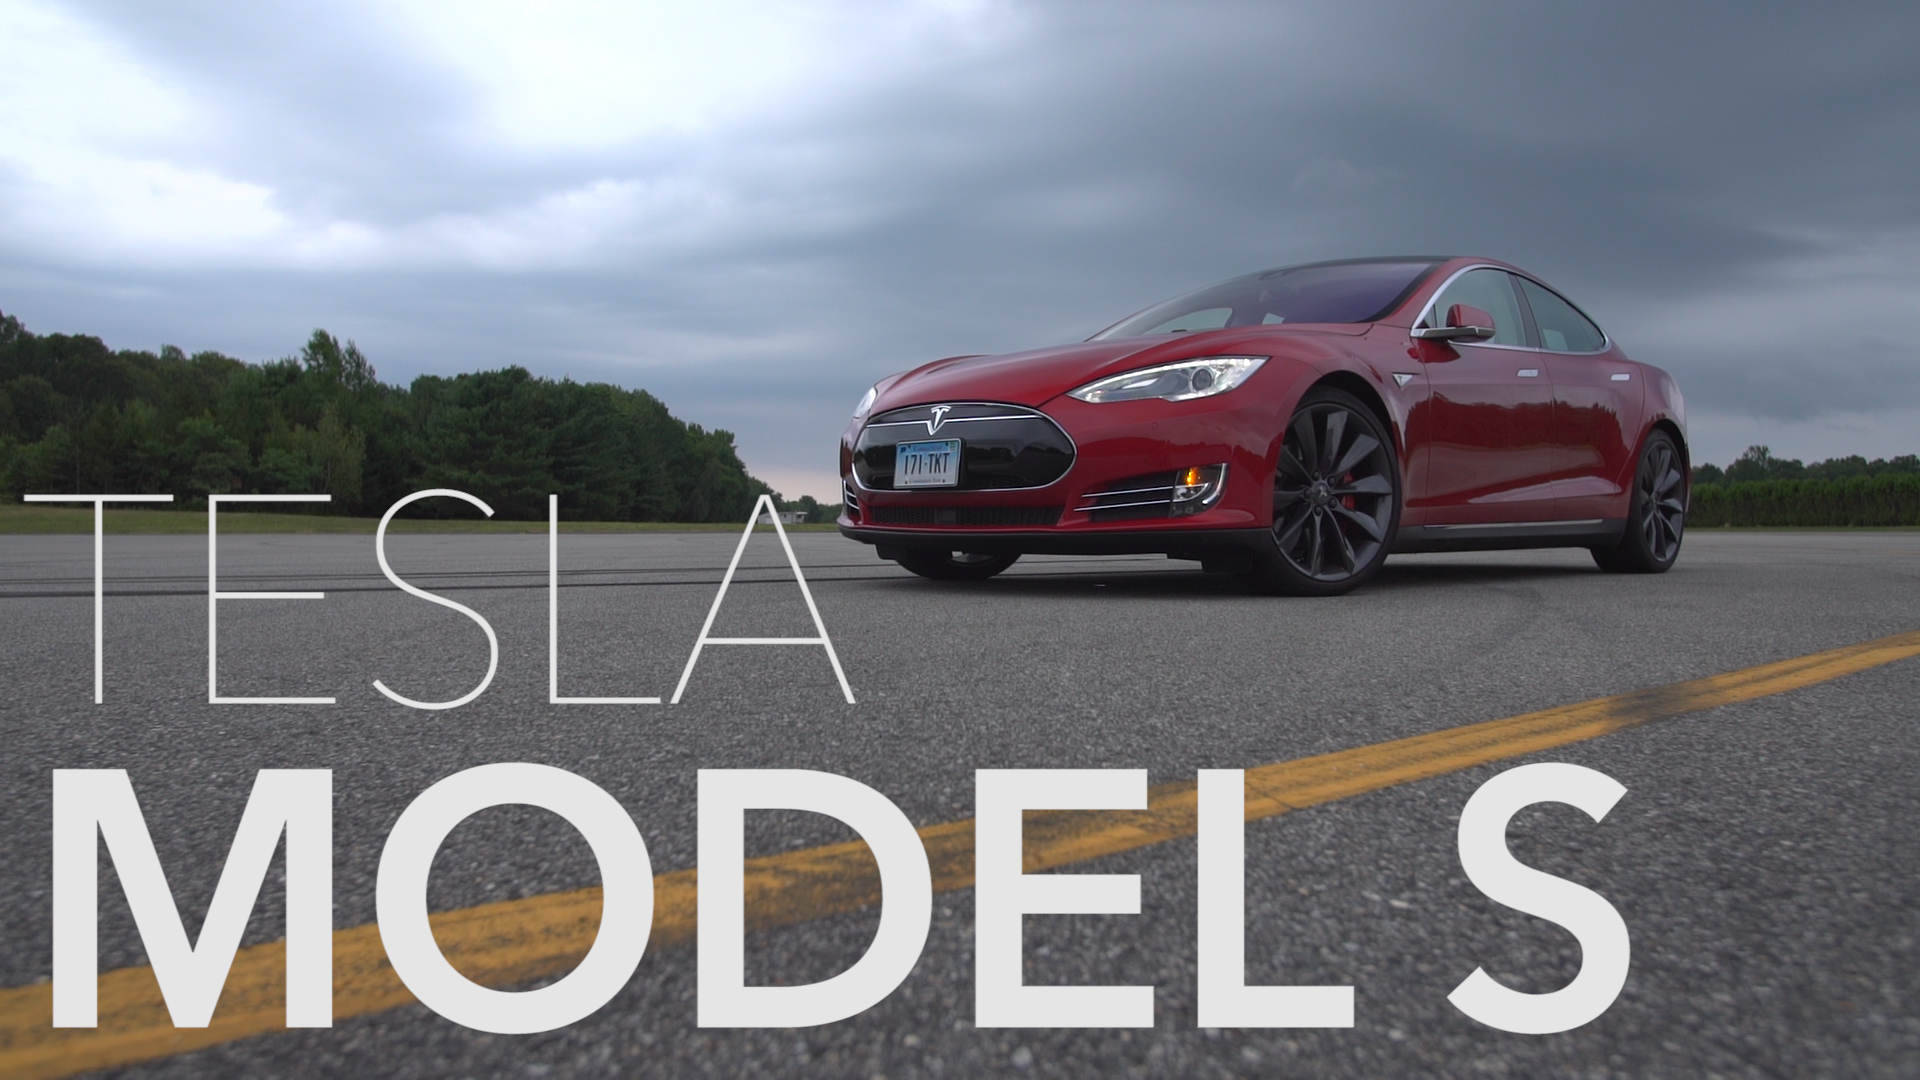 2018 Tesla Model S Reviews, Ratings, Prices - Consumer Reports